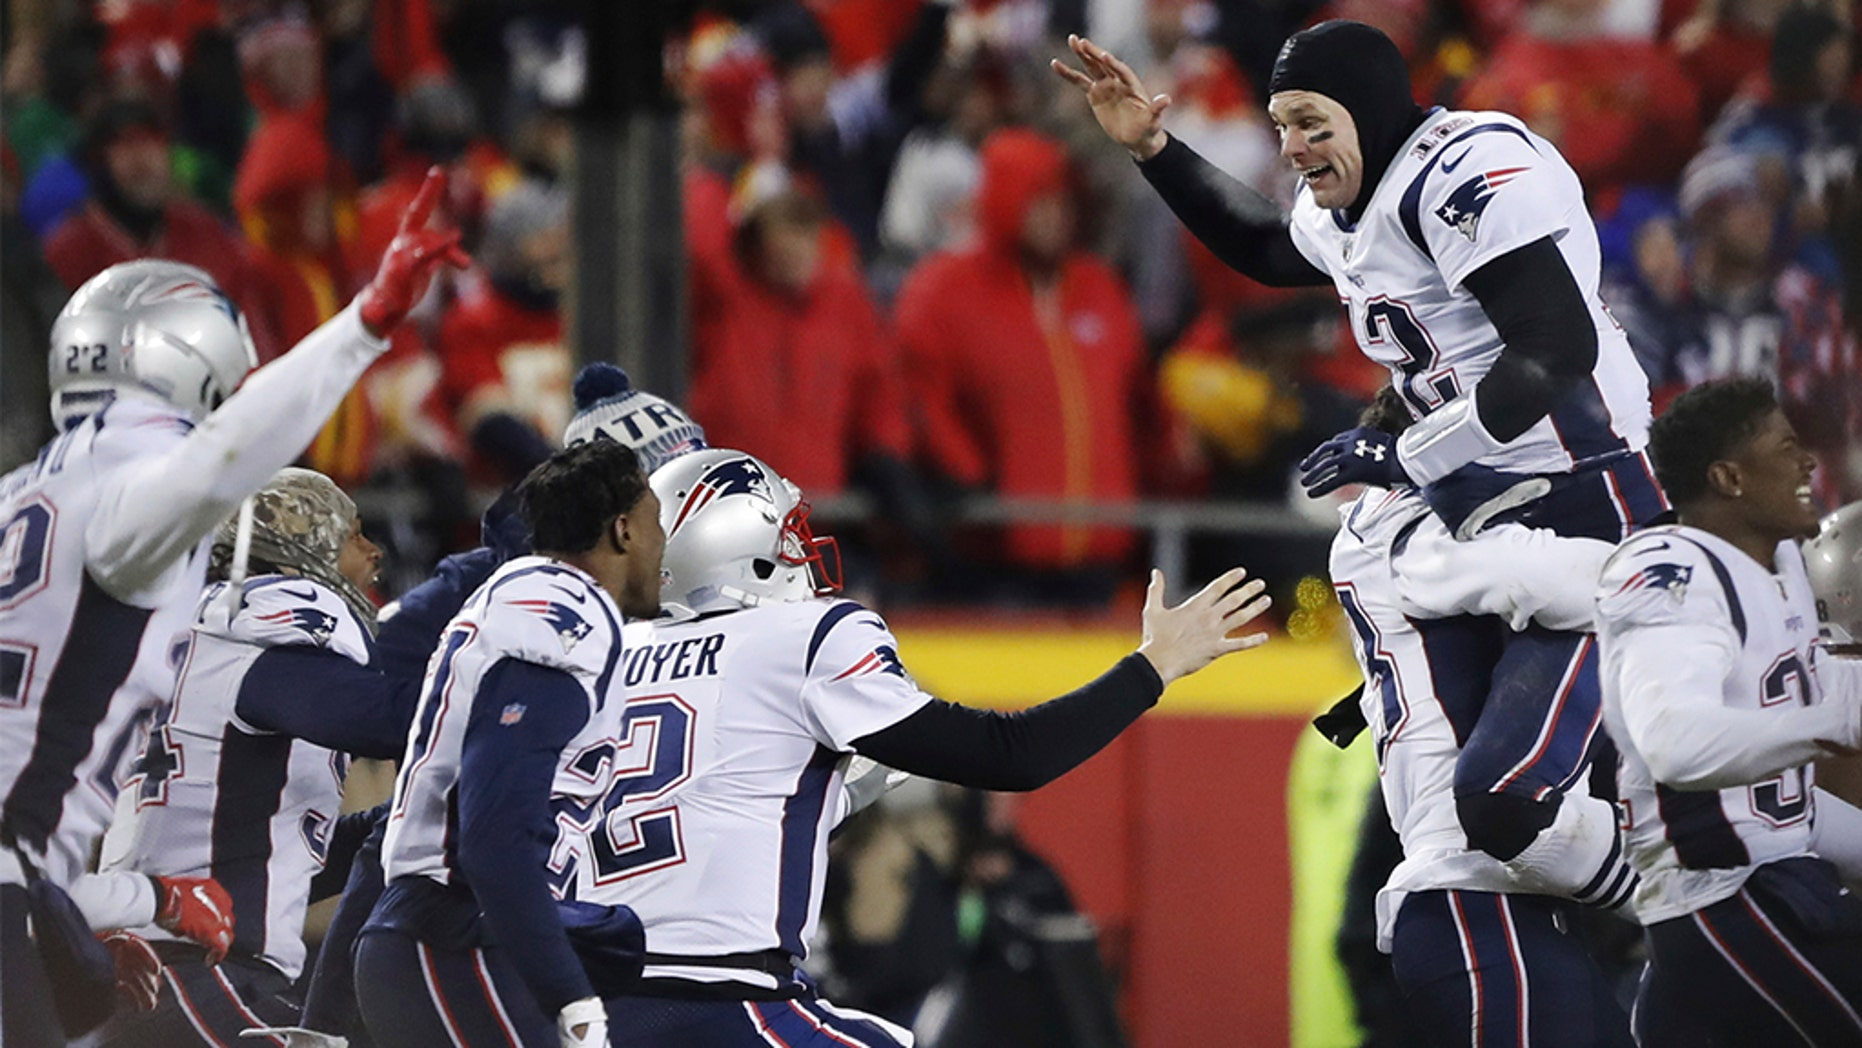 FILE - In this Jan. 20, 2019, file photo, New England Patriots quarterback Tom Brady (12) celebrates with his teammates after the AFC Championship NFL football game, in Kansas City, Mo. With five rings Tom Brady has already established himself as the most-decorated quarterback in Super Bowl history. (AP Photo/Charlie Neibergall, File)174